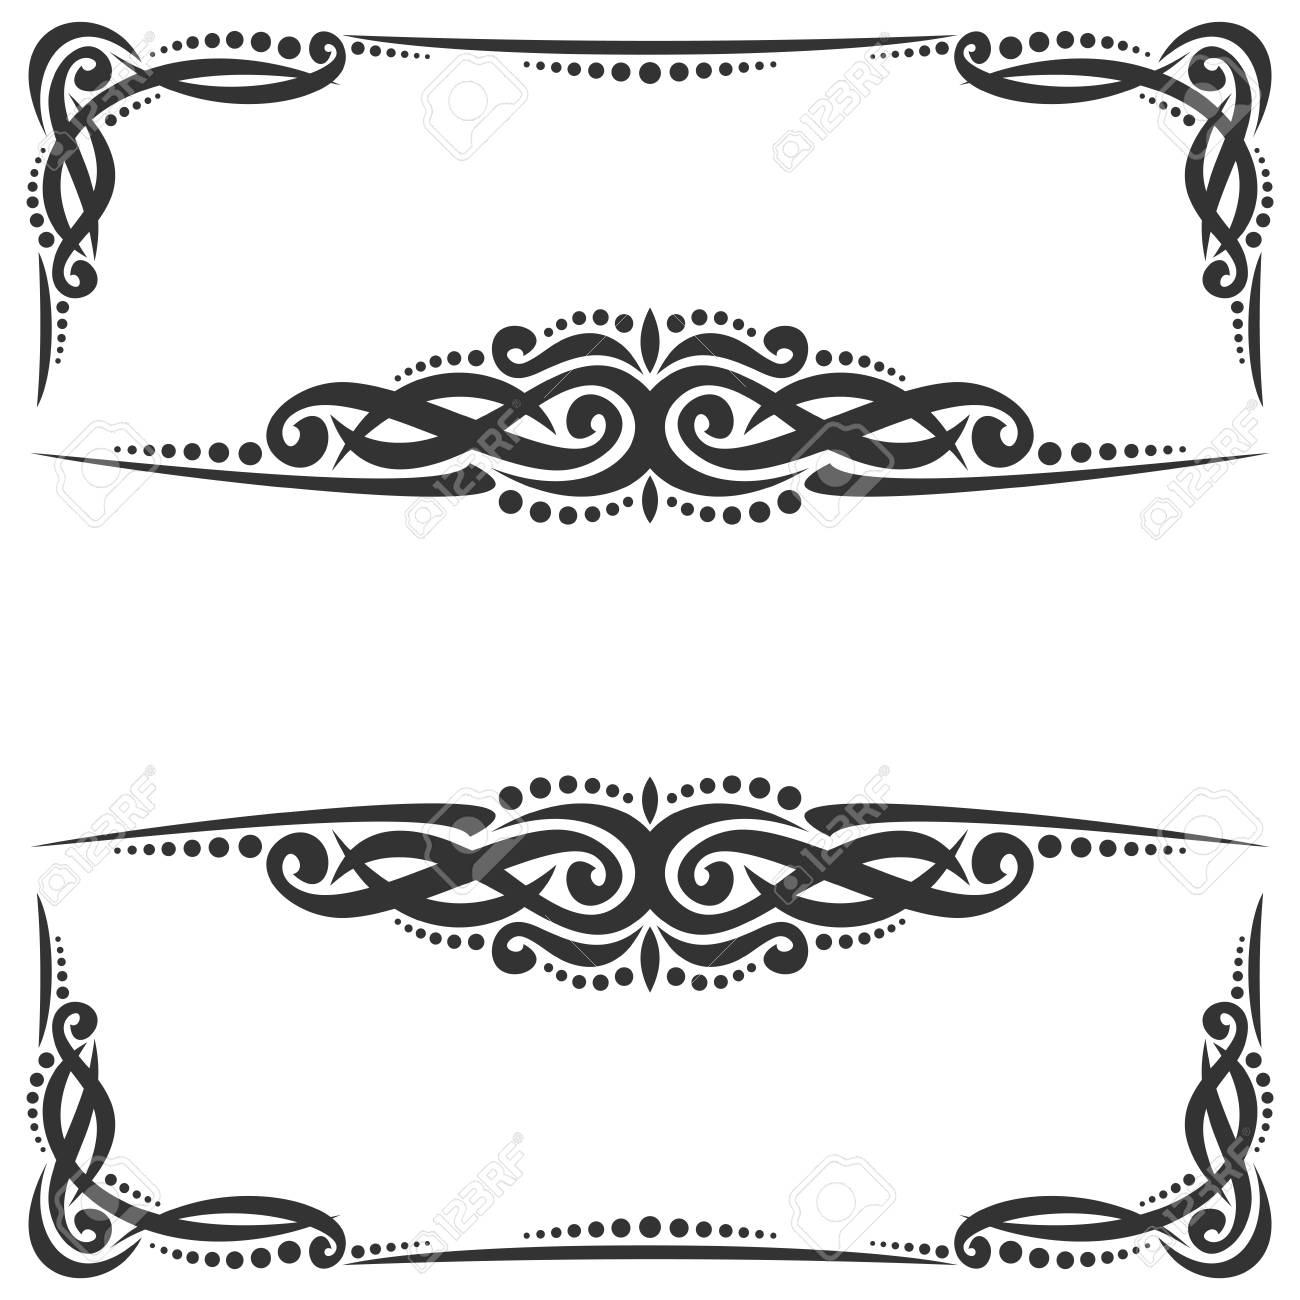 Decorative Vector Black Frames On White, Ornate Decoration With ...